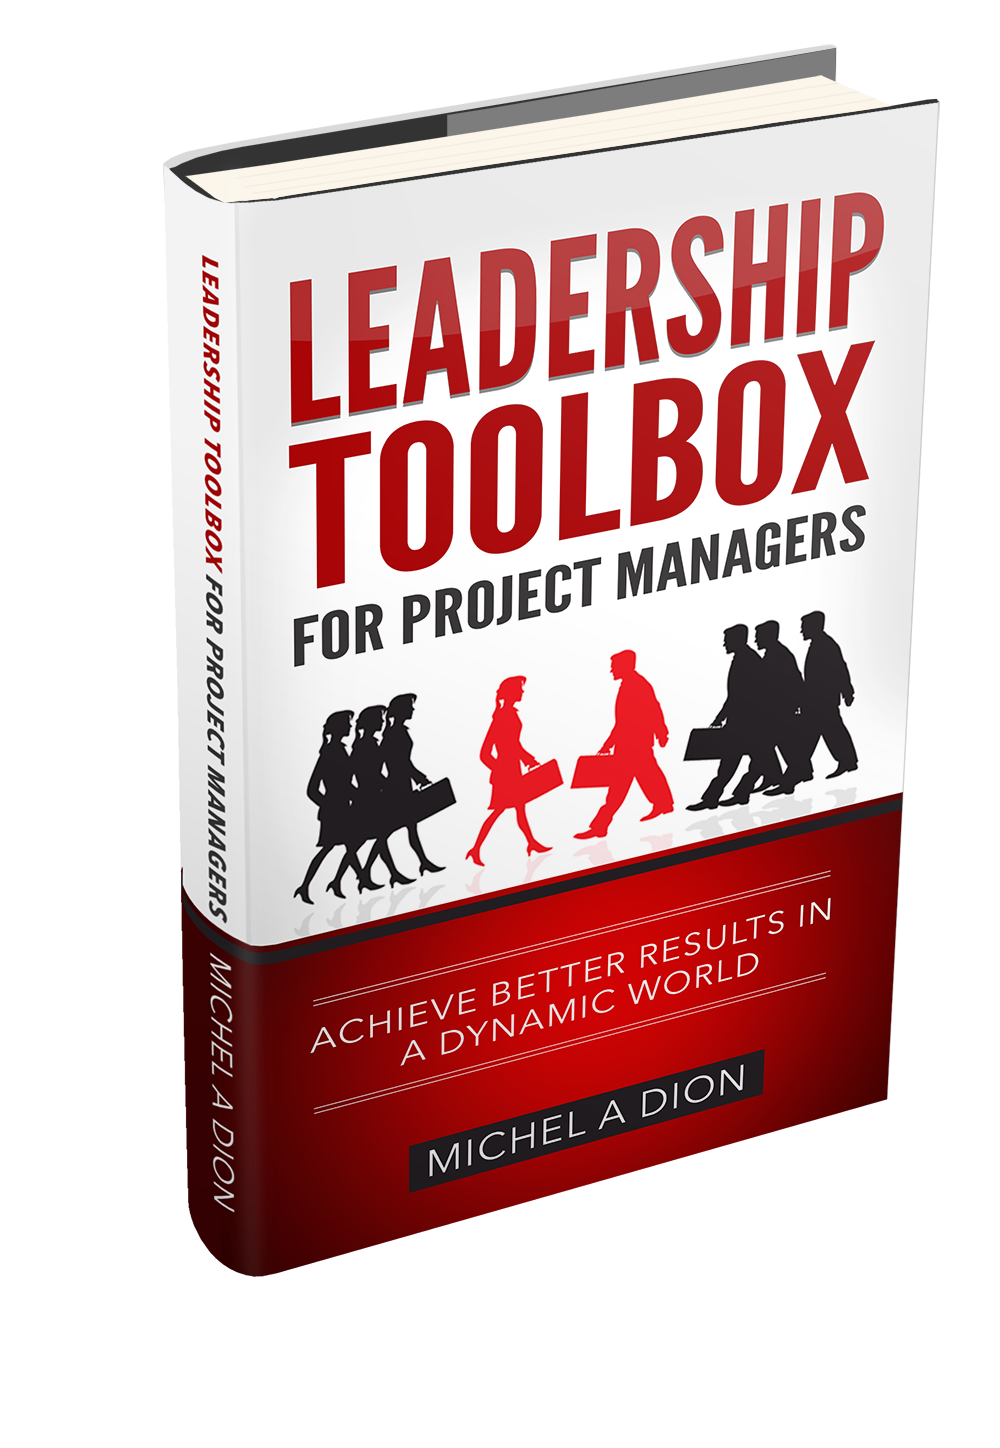 Leadership Toolbox for Project Managers